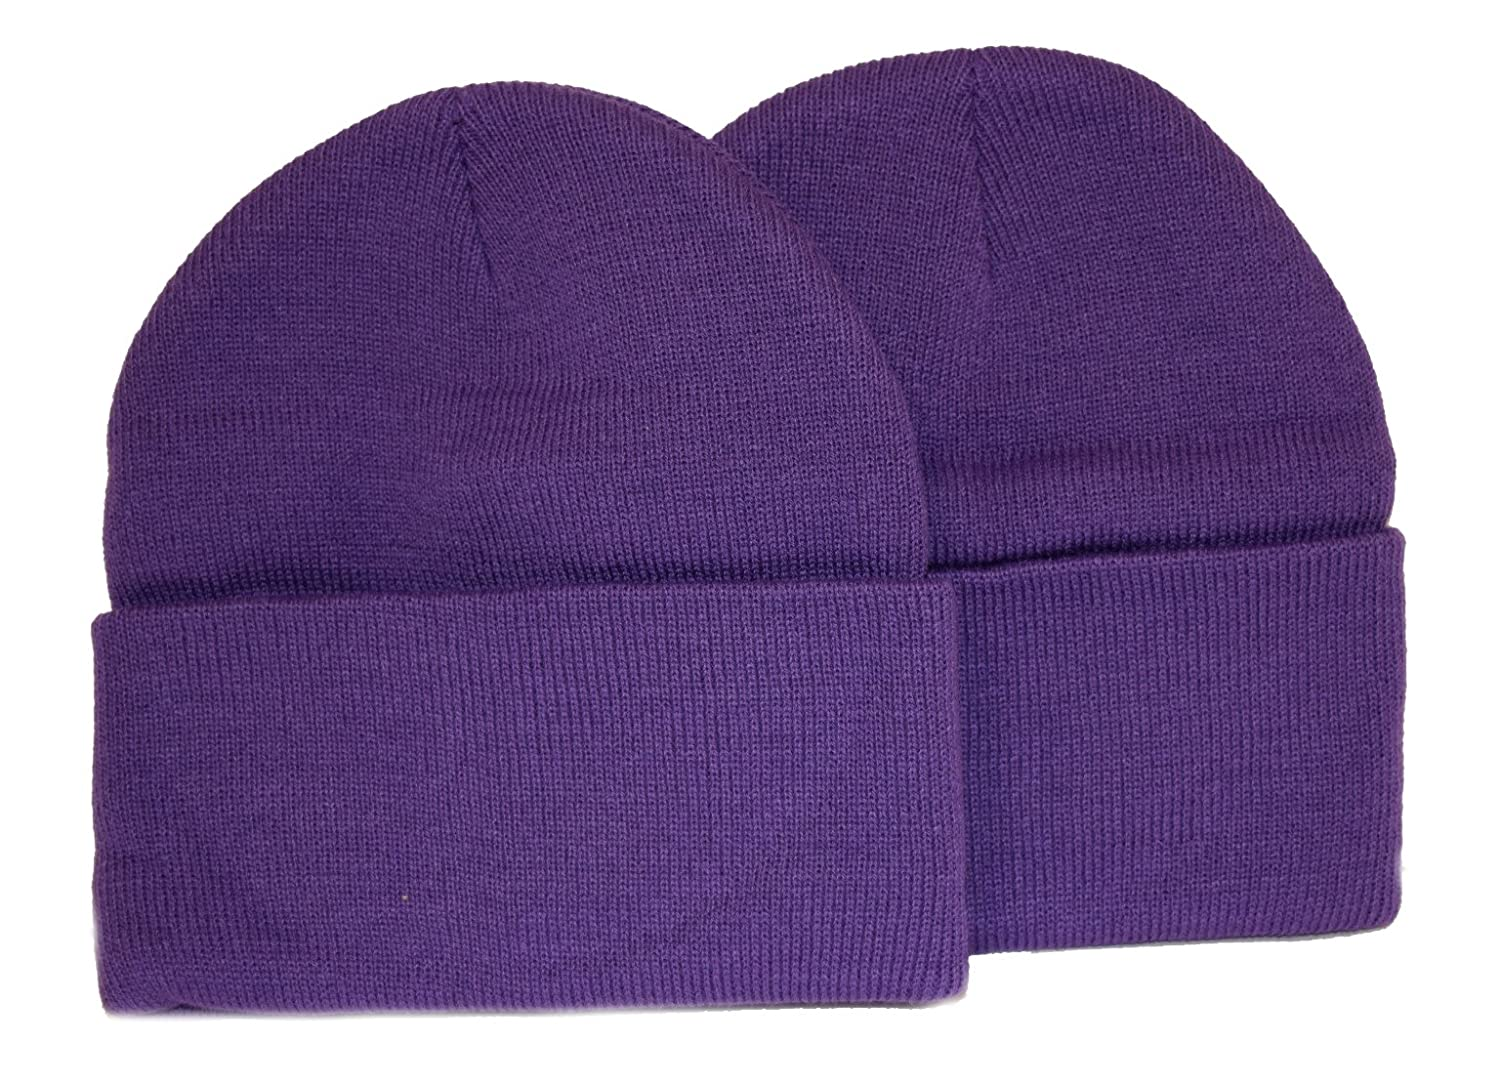 Holiday Deals! 2 Pack Knit Beanies / Purple / Great Price!